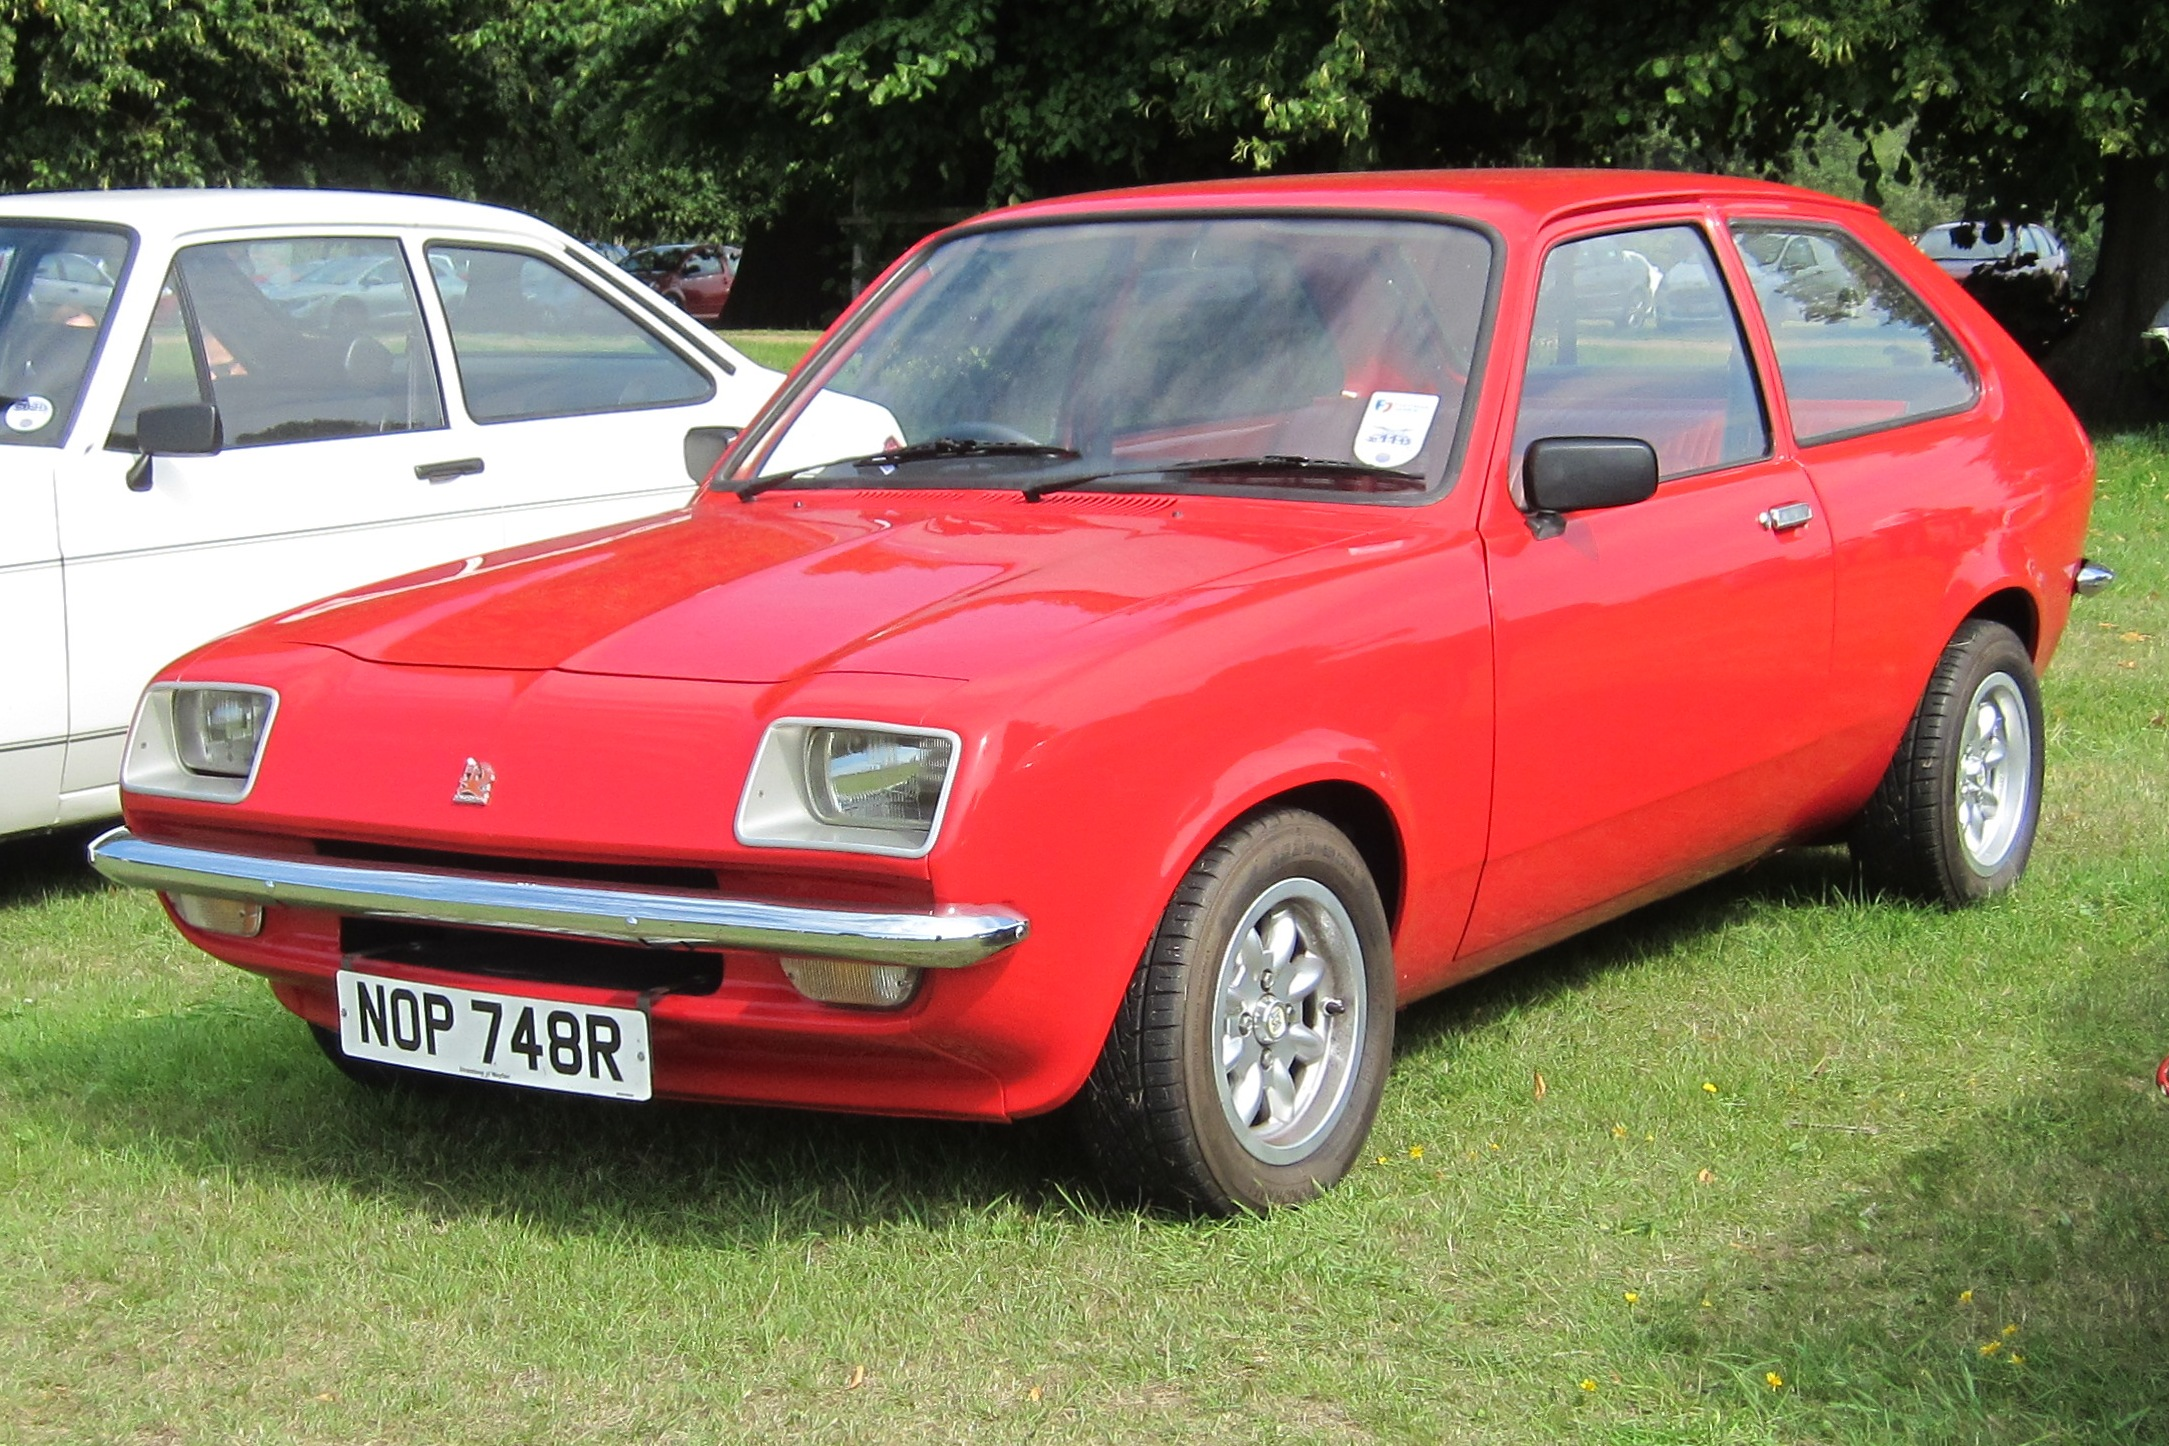 file vauxhall chevette 1256cc registered august 1976 jpg wikimedia commons https commons wikimedia org wiki file vauxhall chevette 1256cc registered august 1976 jpg